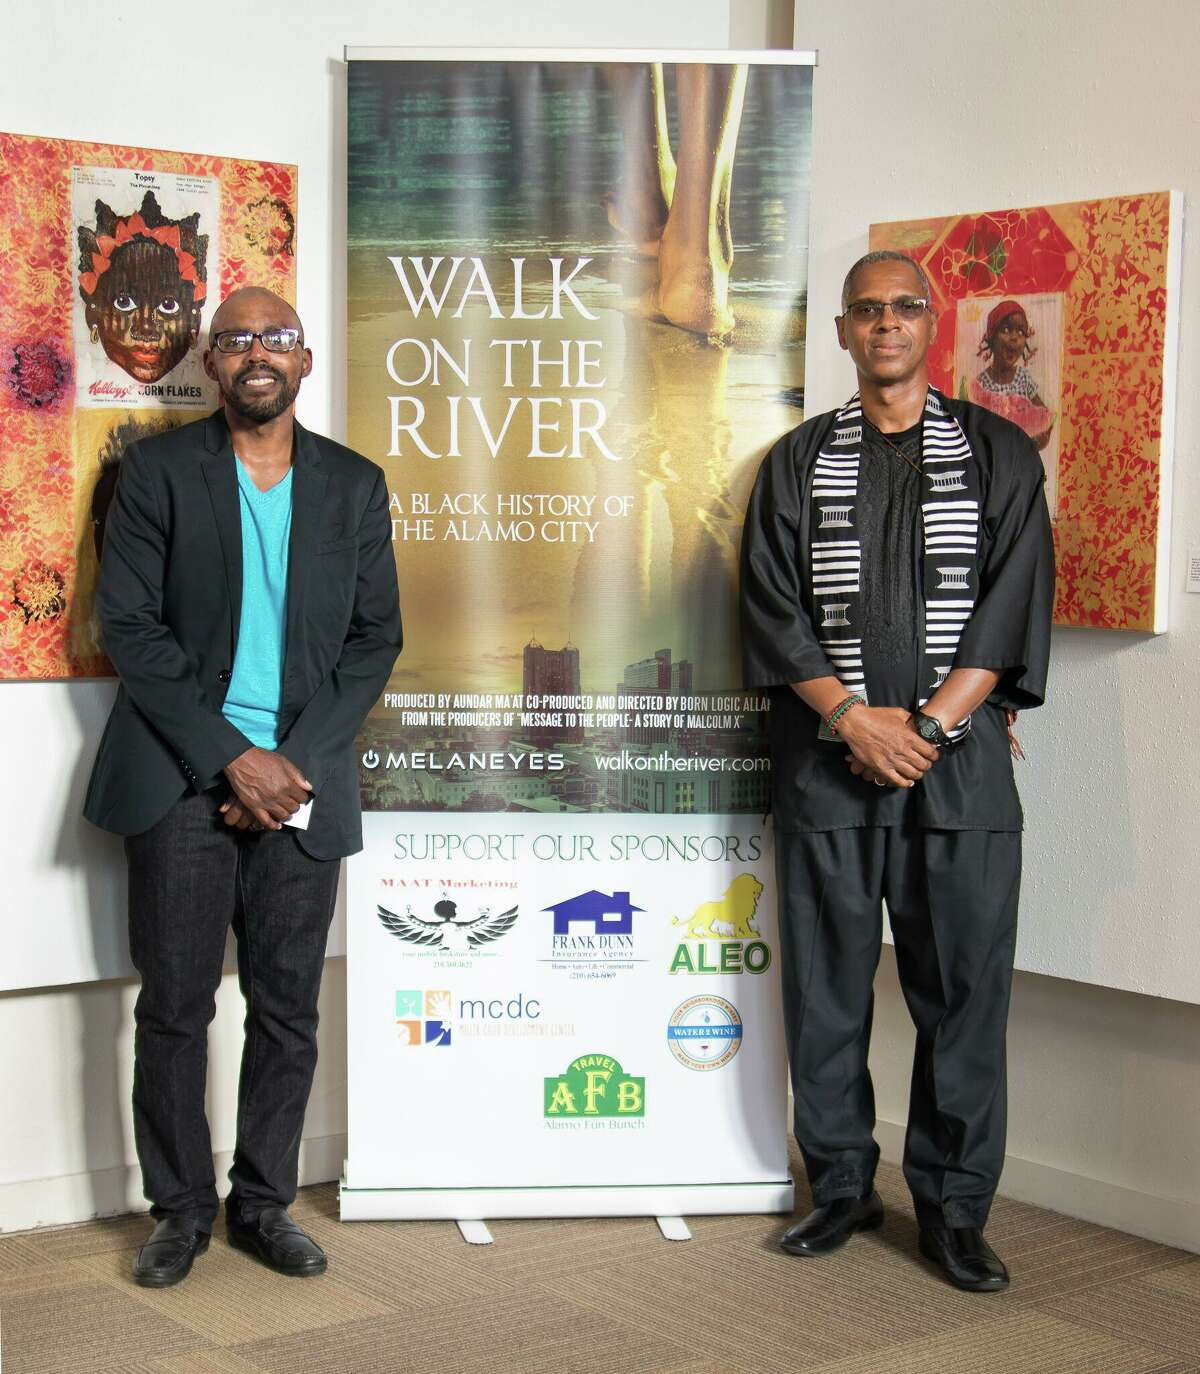 """Filmmakers Born Logic Allah and Aundar Ma'at will discuss their documentary film, """"Walk on the River,"""" at a screening Friday night in observance of Juneteenth, which is Saturday."""